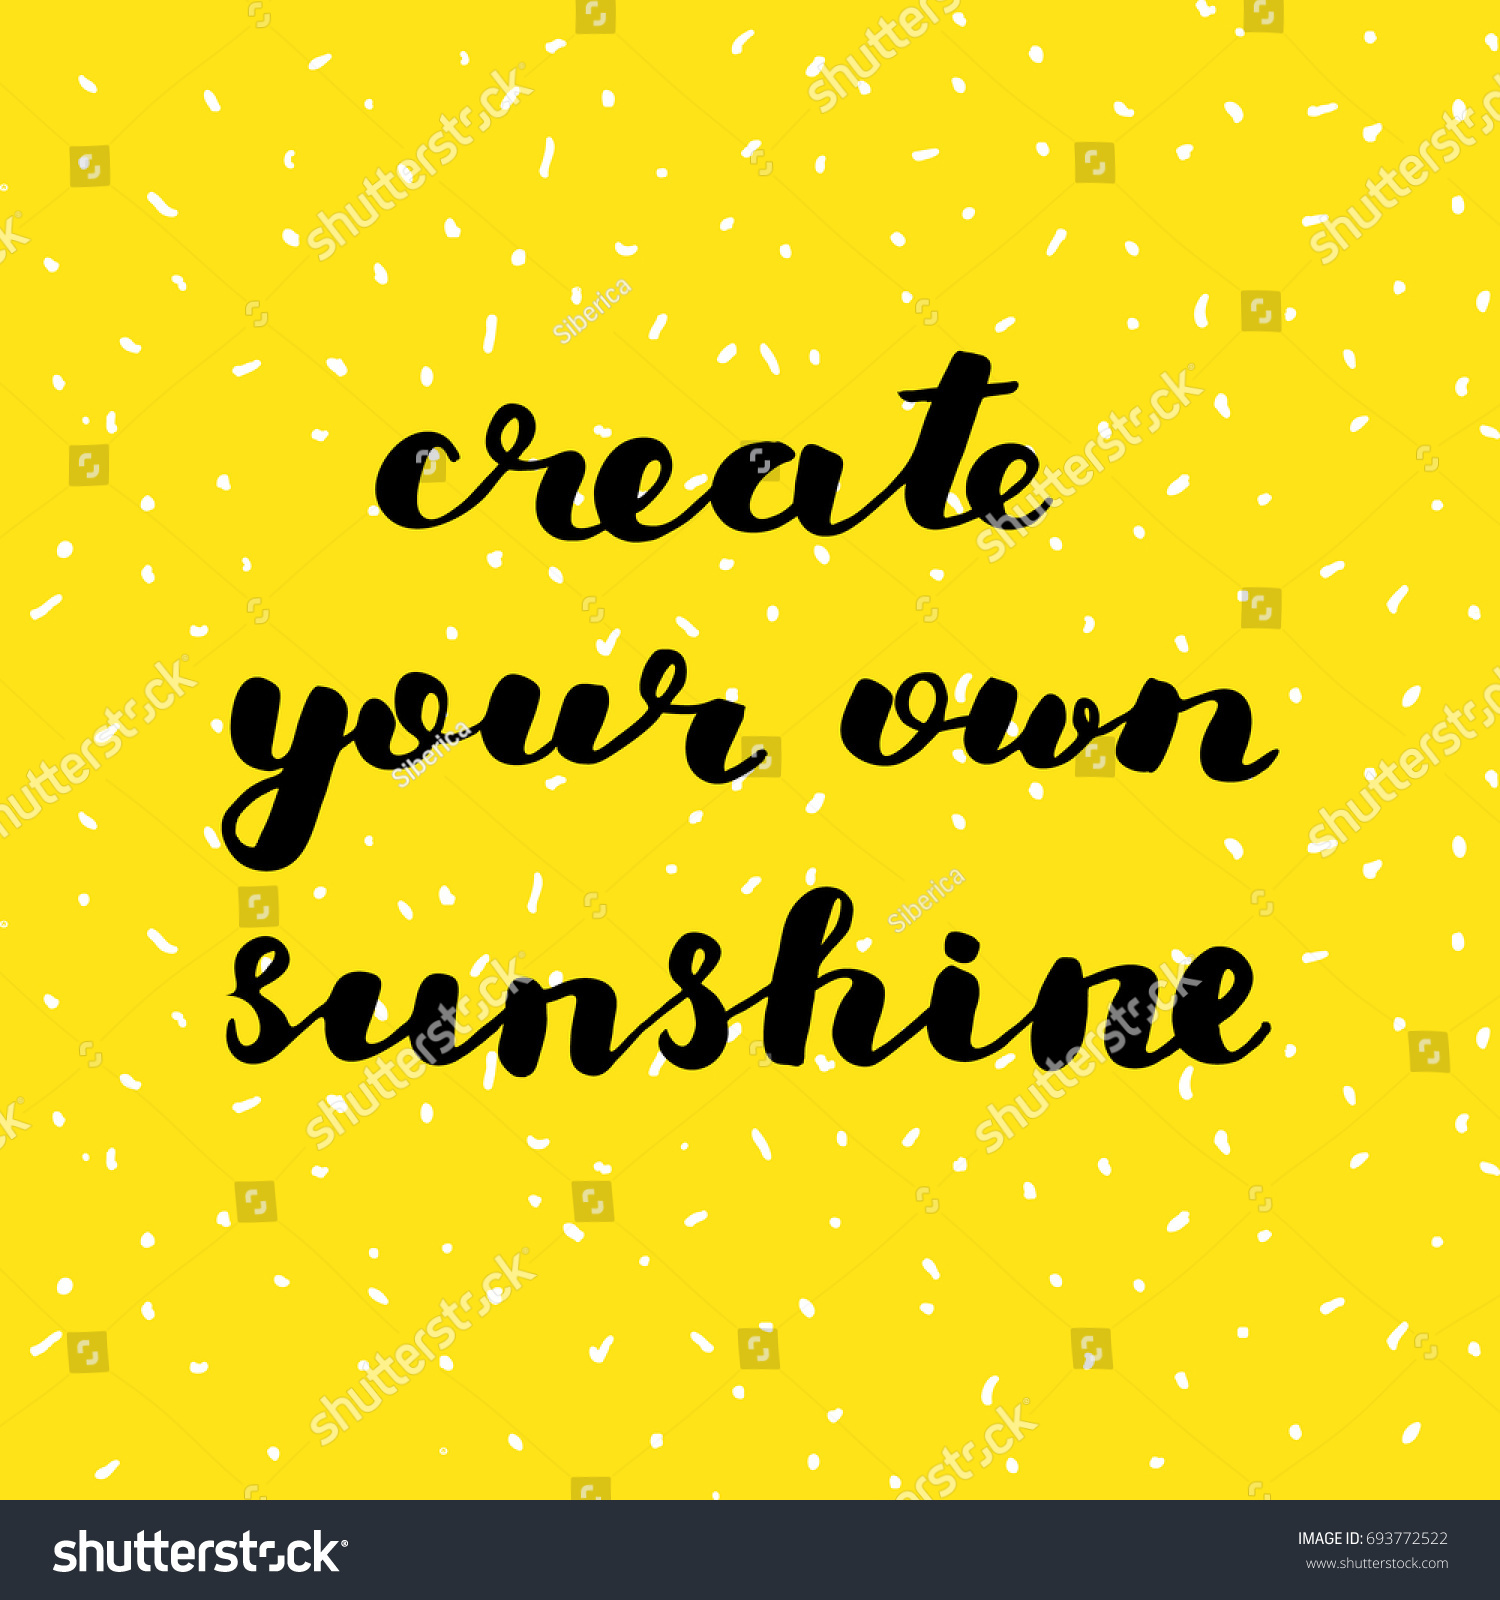 Create Your Own Quote Create Your Own Sunshine Brush Hand Stock Illustration 693772522